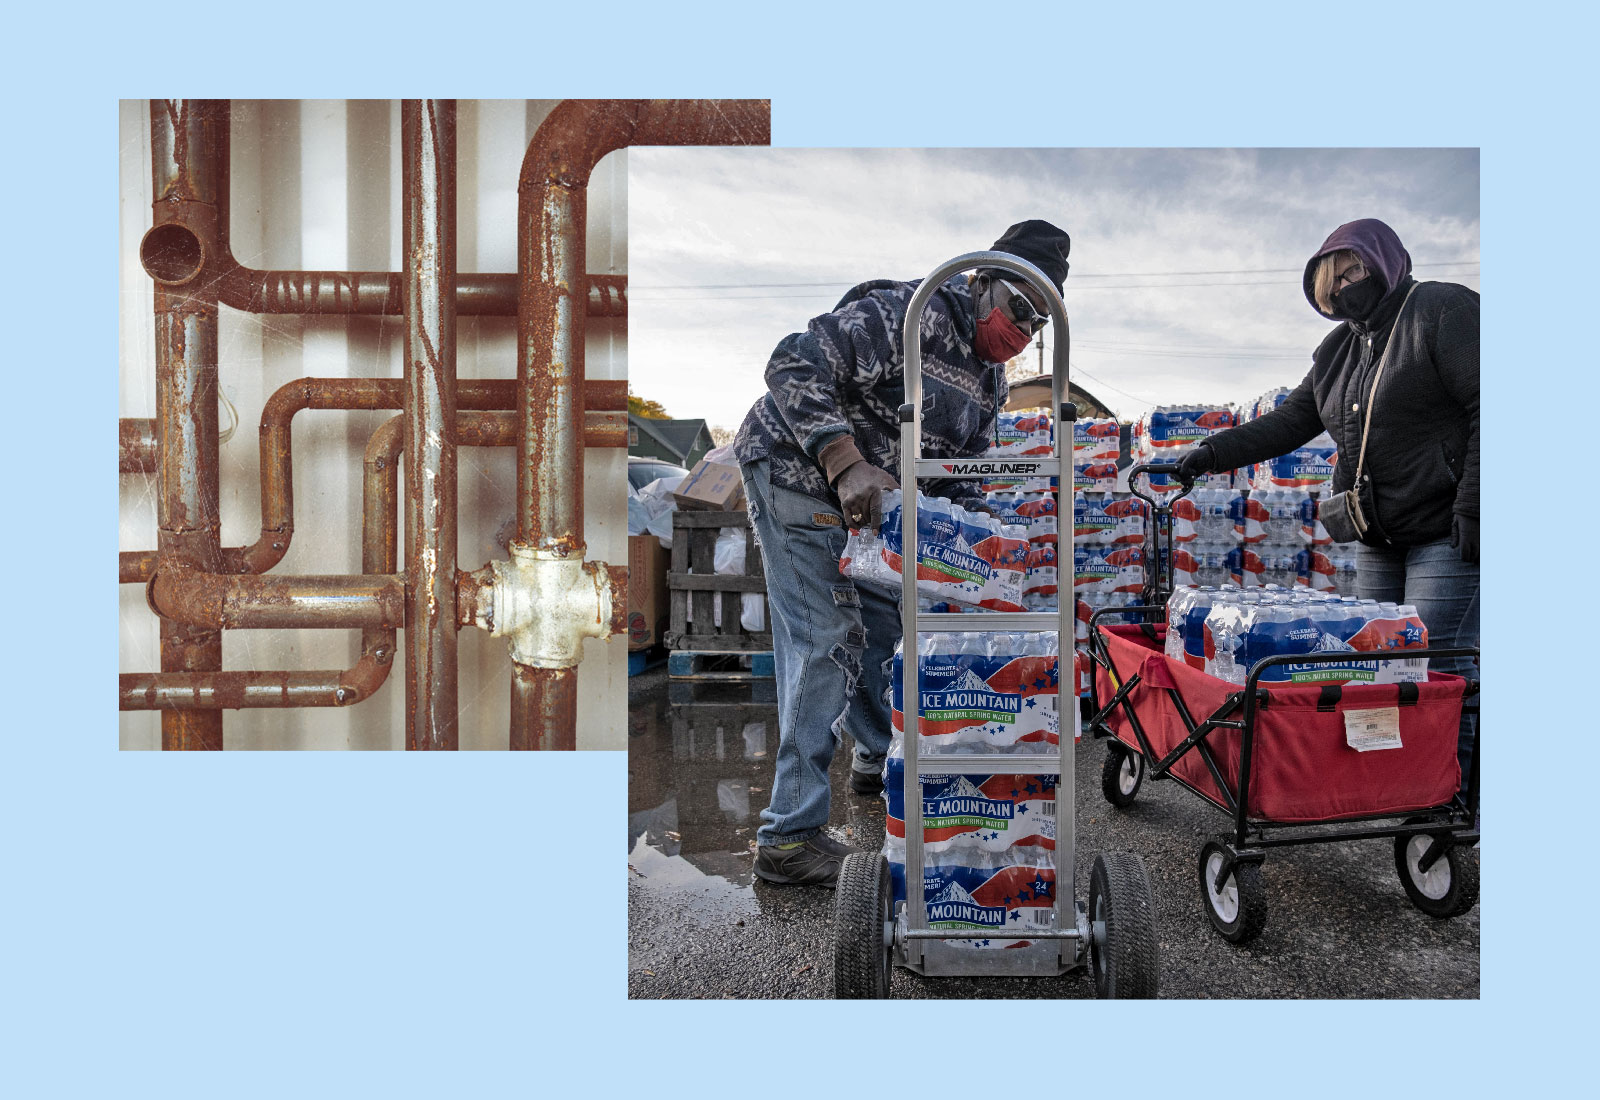 Collage: rusted water pipes and volunteers unloading packs of bottled water